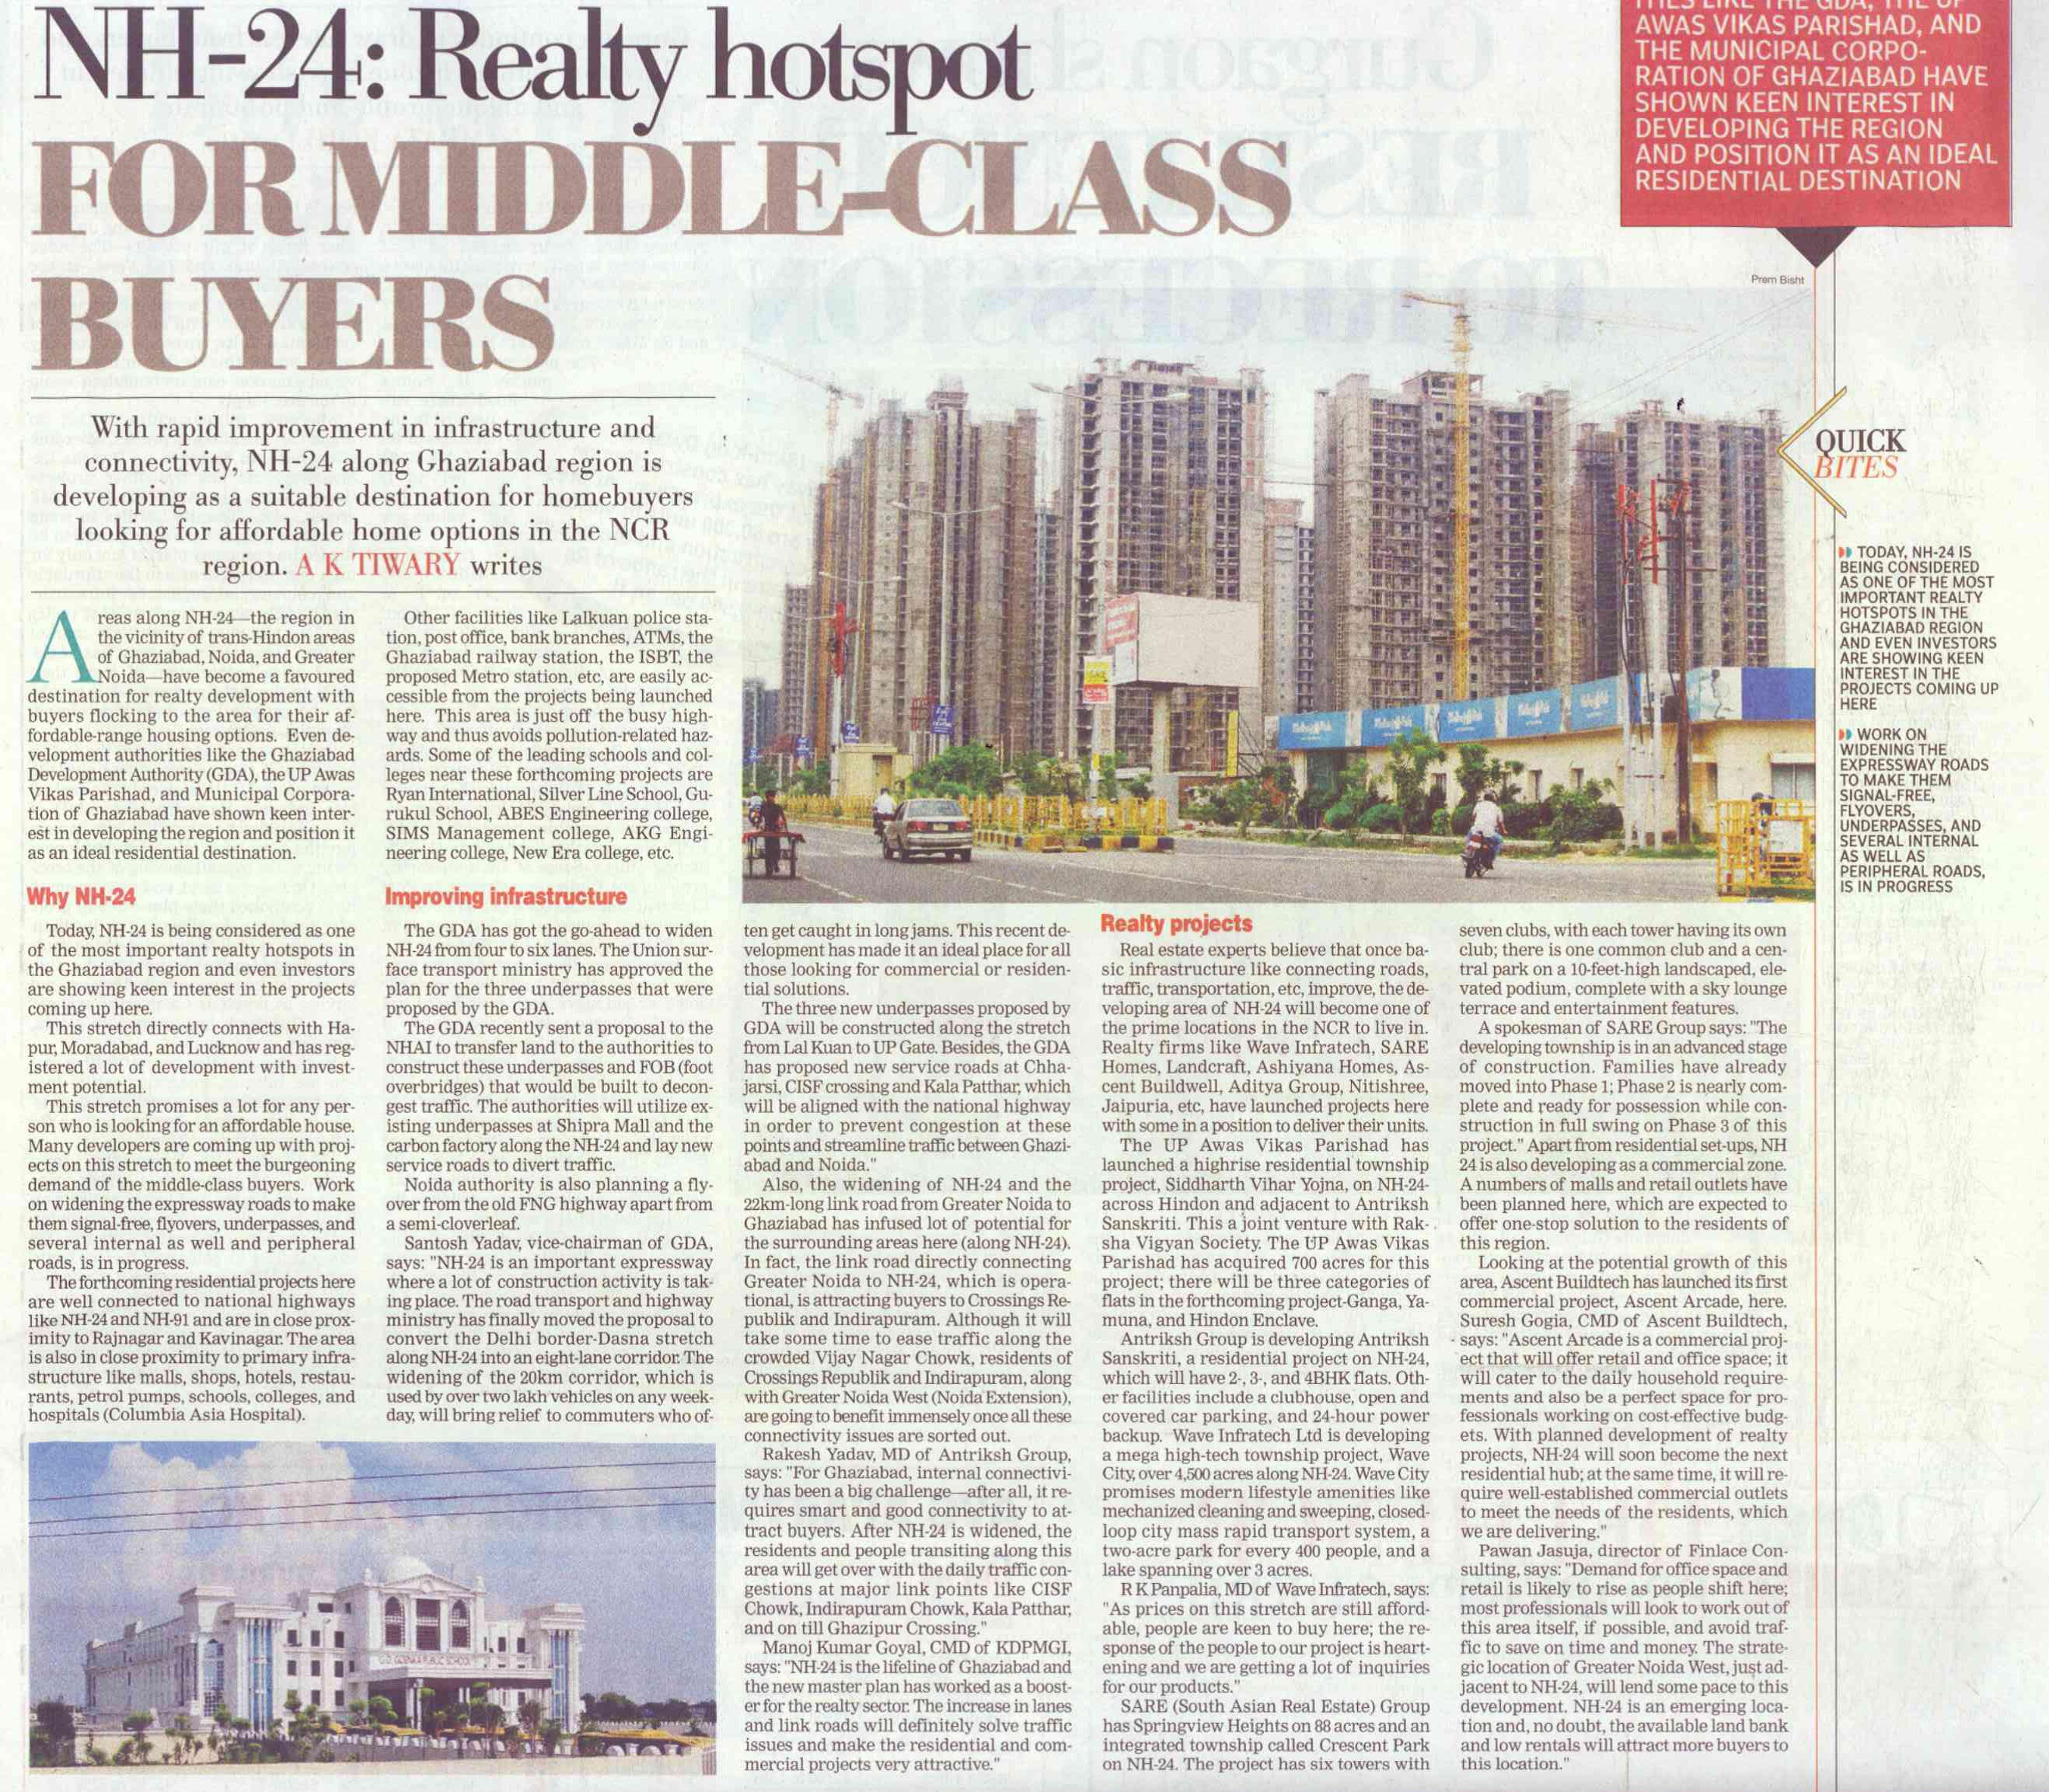 NH-24 Realty hotspot for middle class buyers